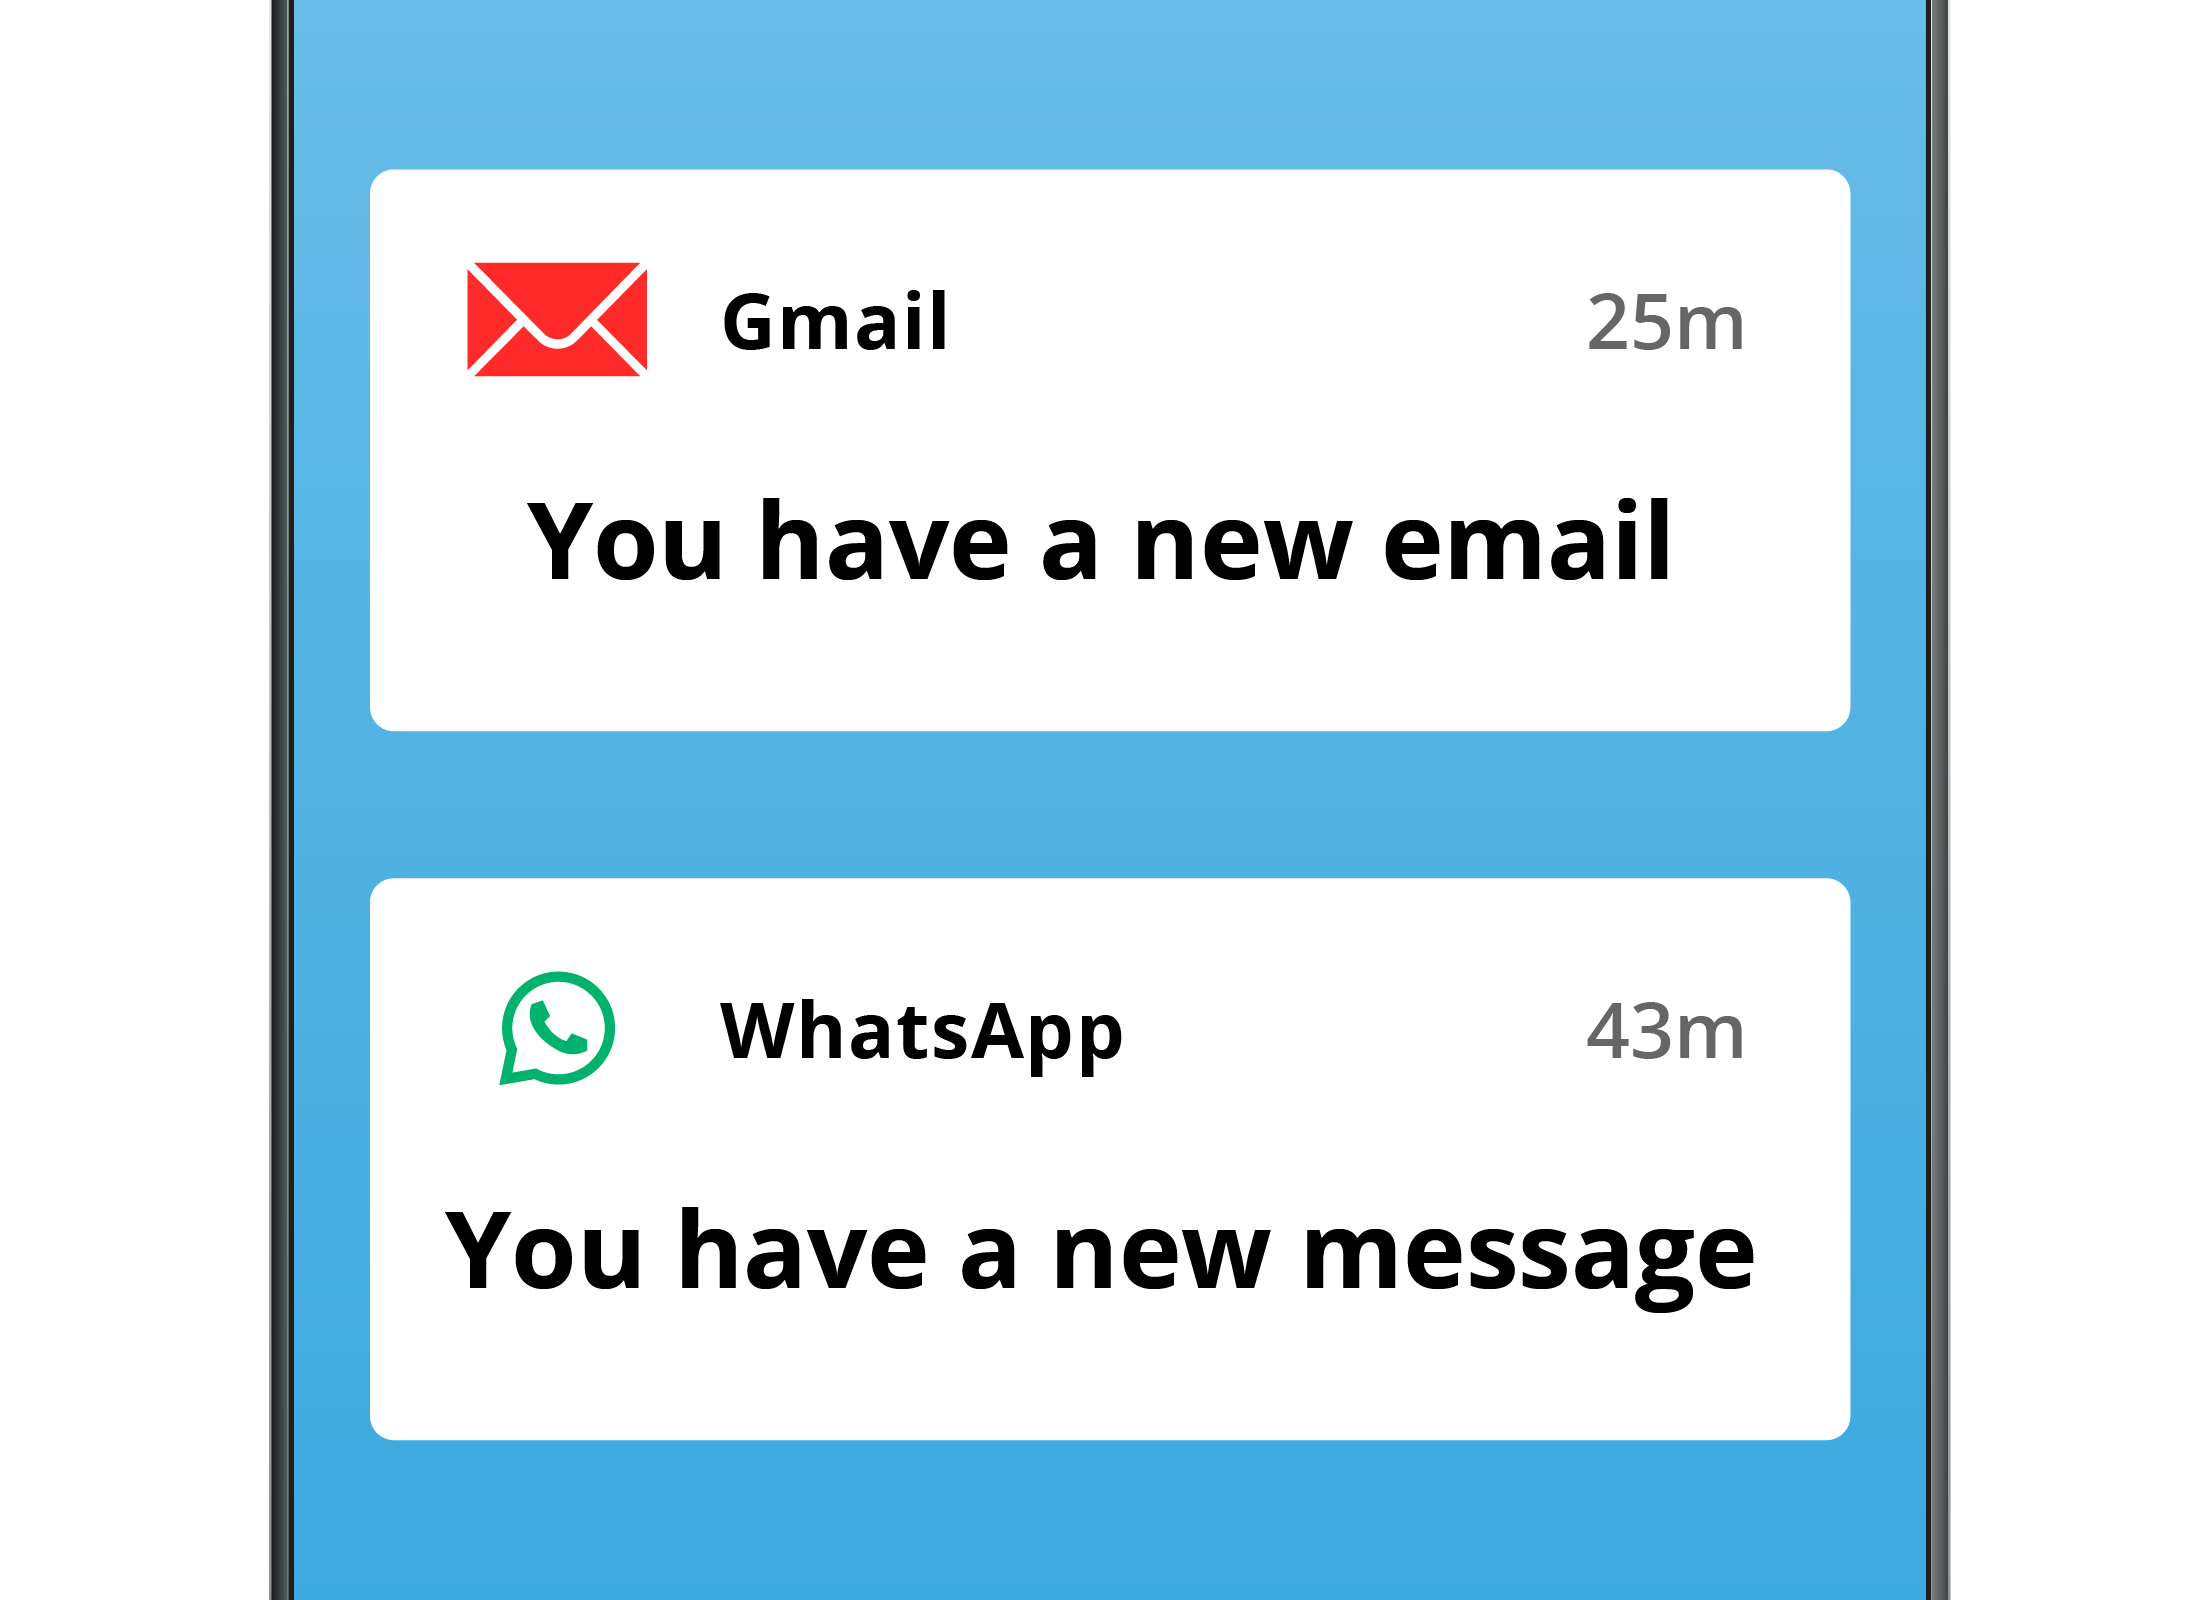 A zoomed-in view of two notifications on a smartphone screen